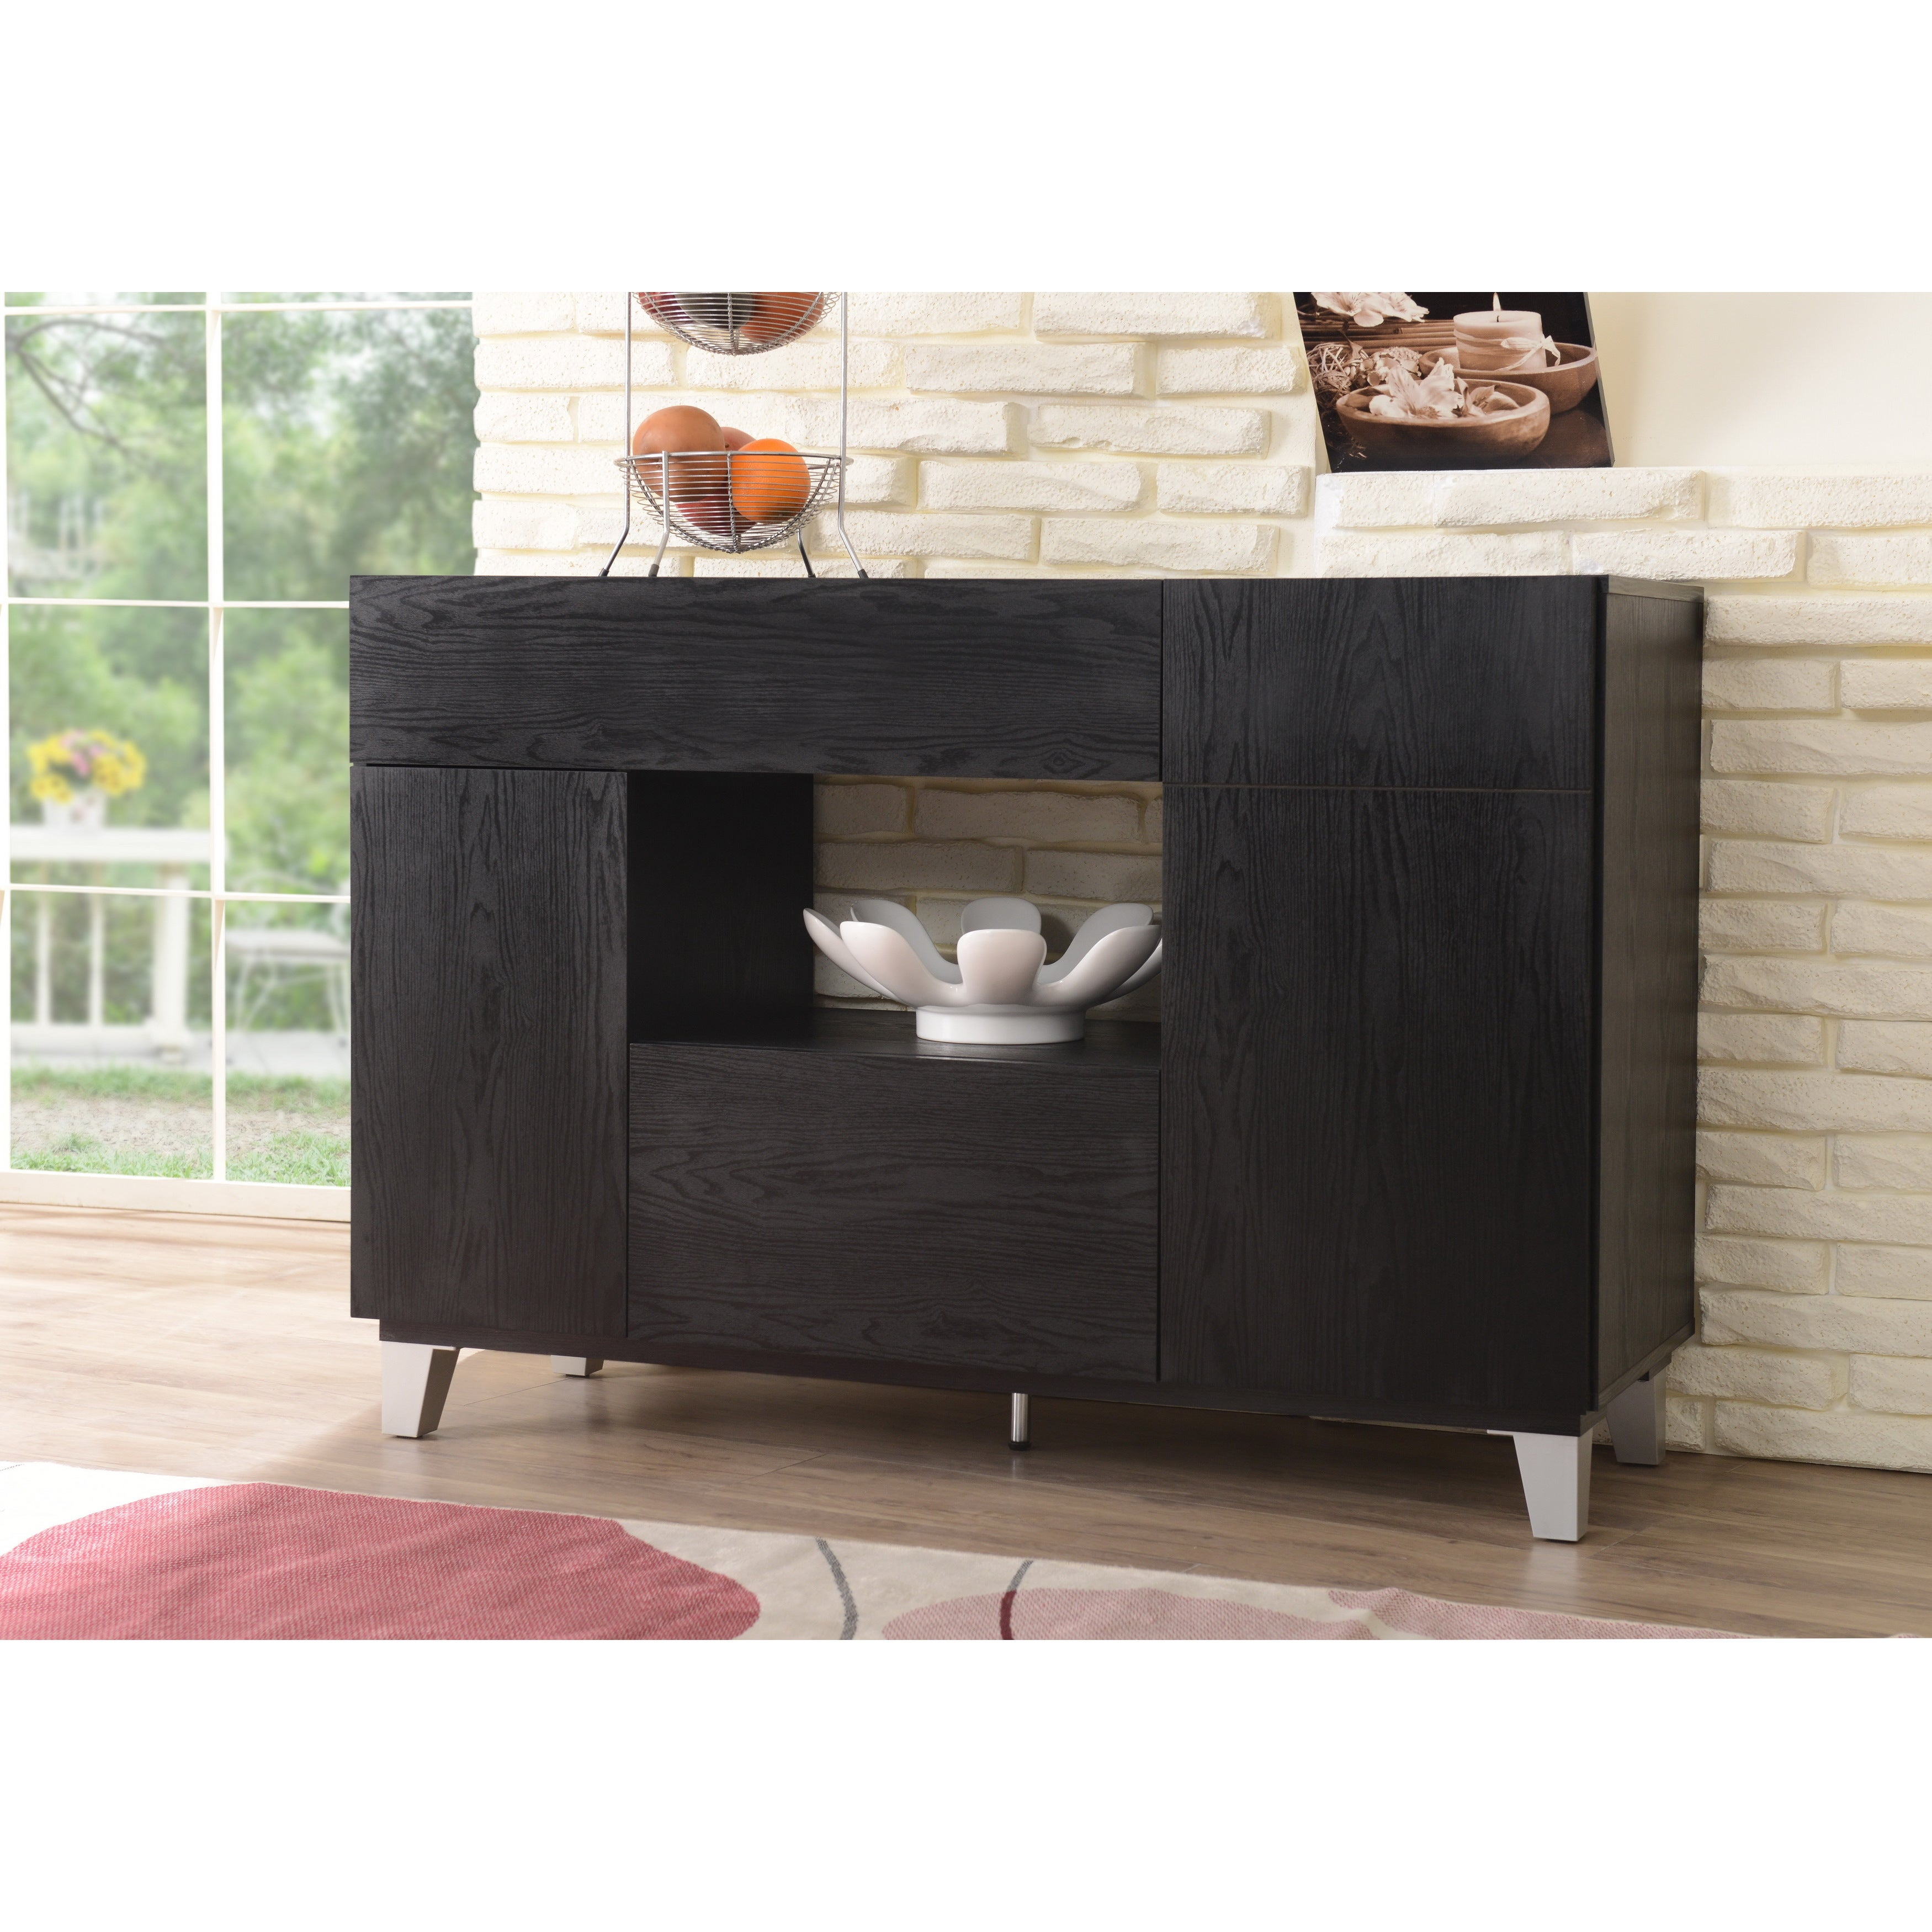 Carrera Contemporary 47 Inch Black Dining Buffet Storage Serverfoa Intended For Carrera Contemporary Black Dining Buffets (View 7 of 30)